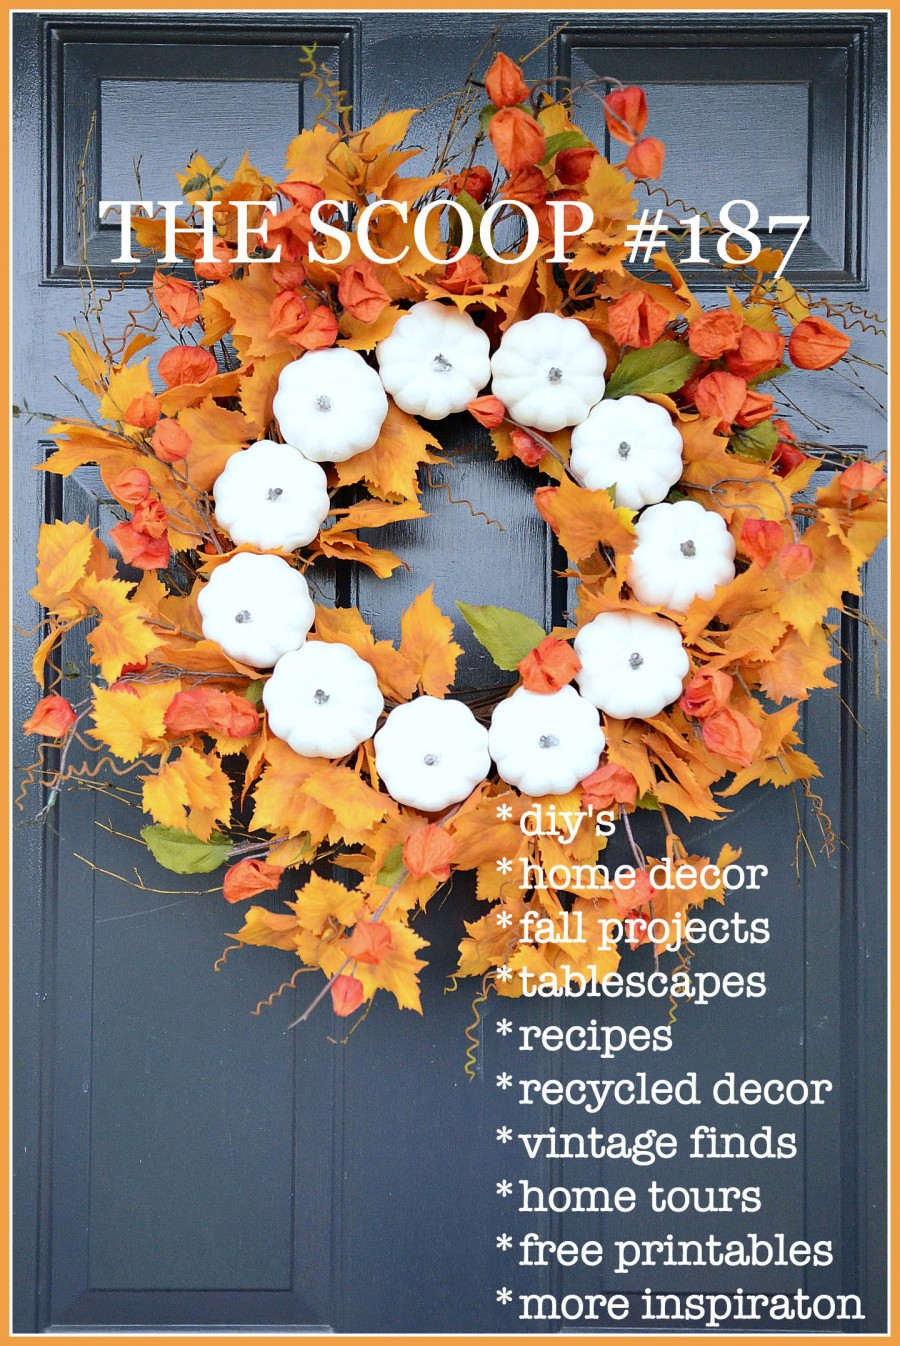 THE SCOOP #187- Lots of great ideas for decorating, fall, food and fun! -stonegableblog.com